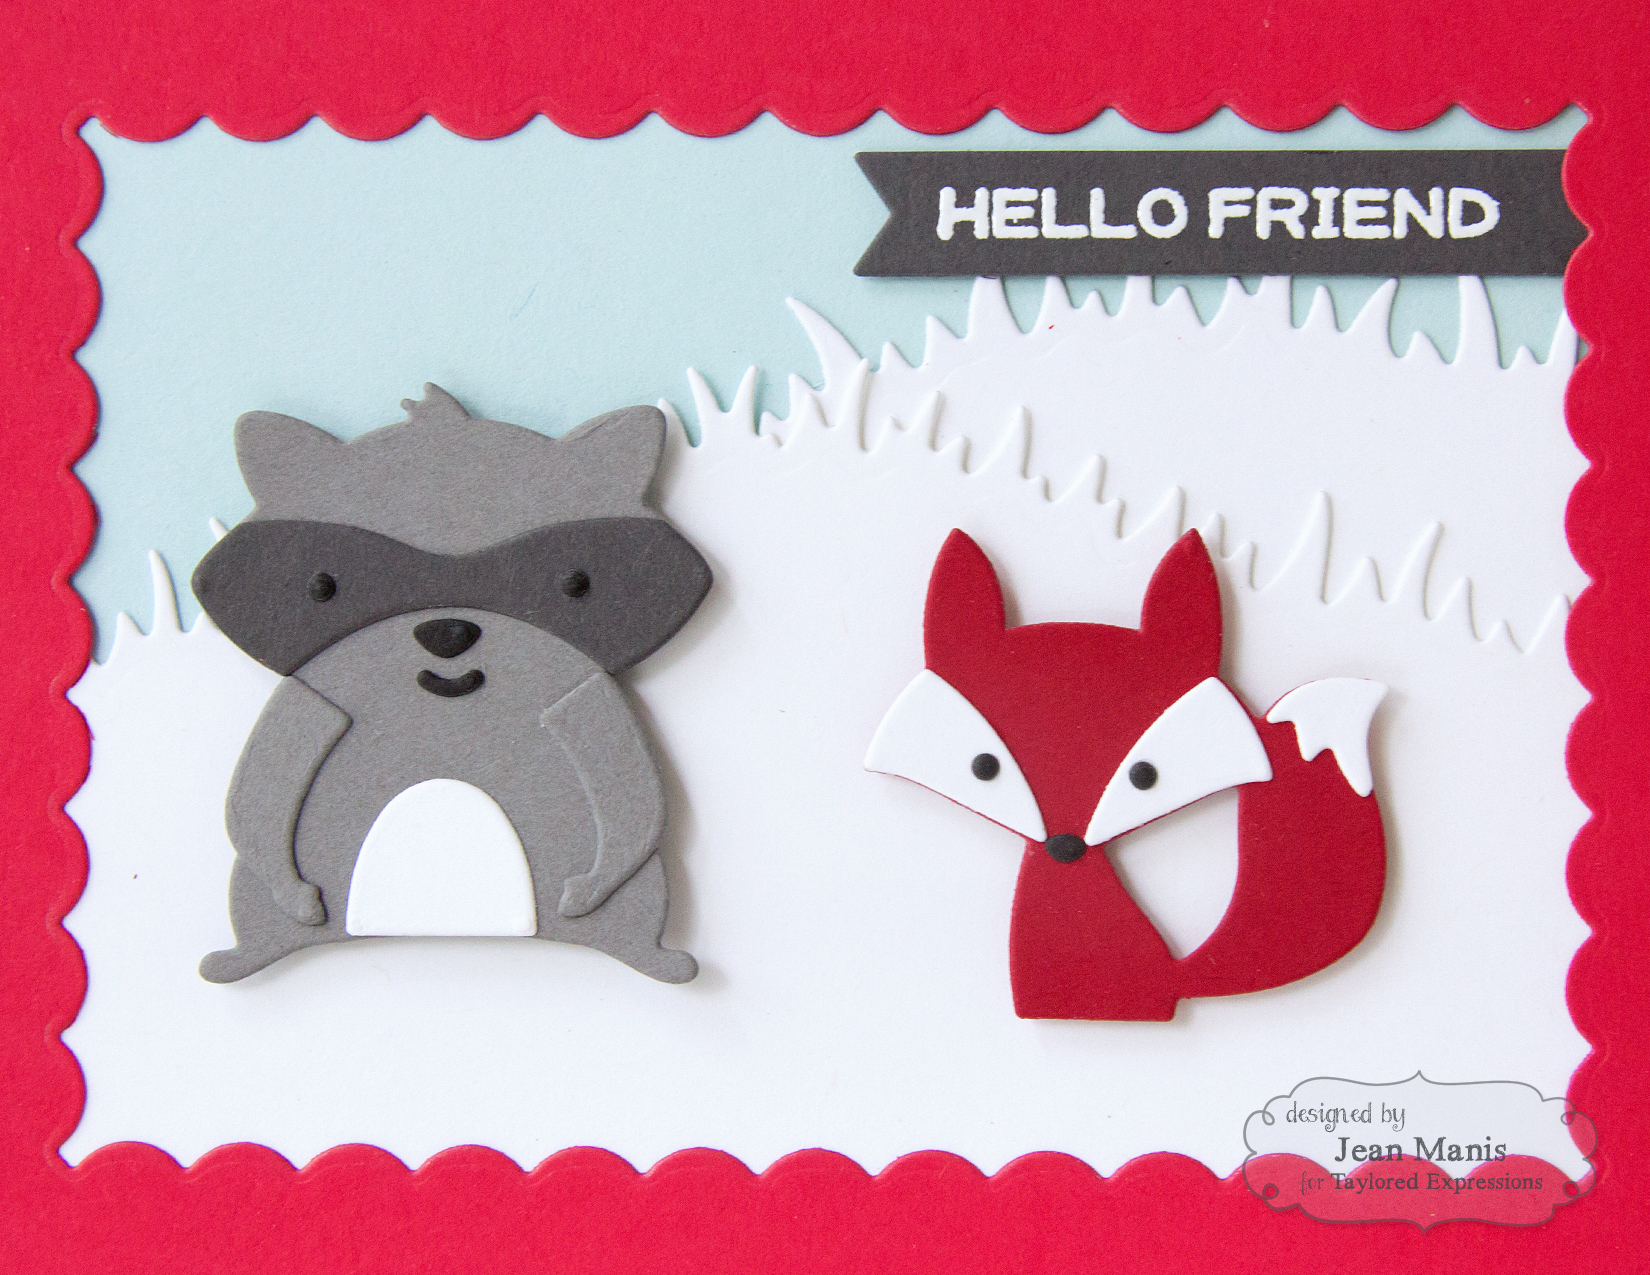 Taylored Expressions - Die-cut Forest Critters